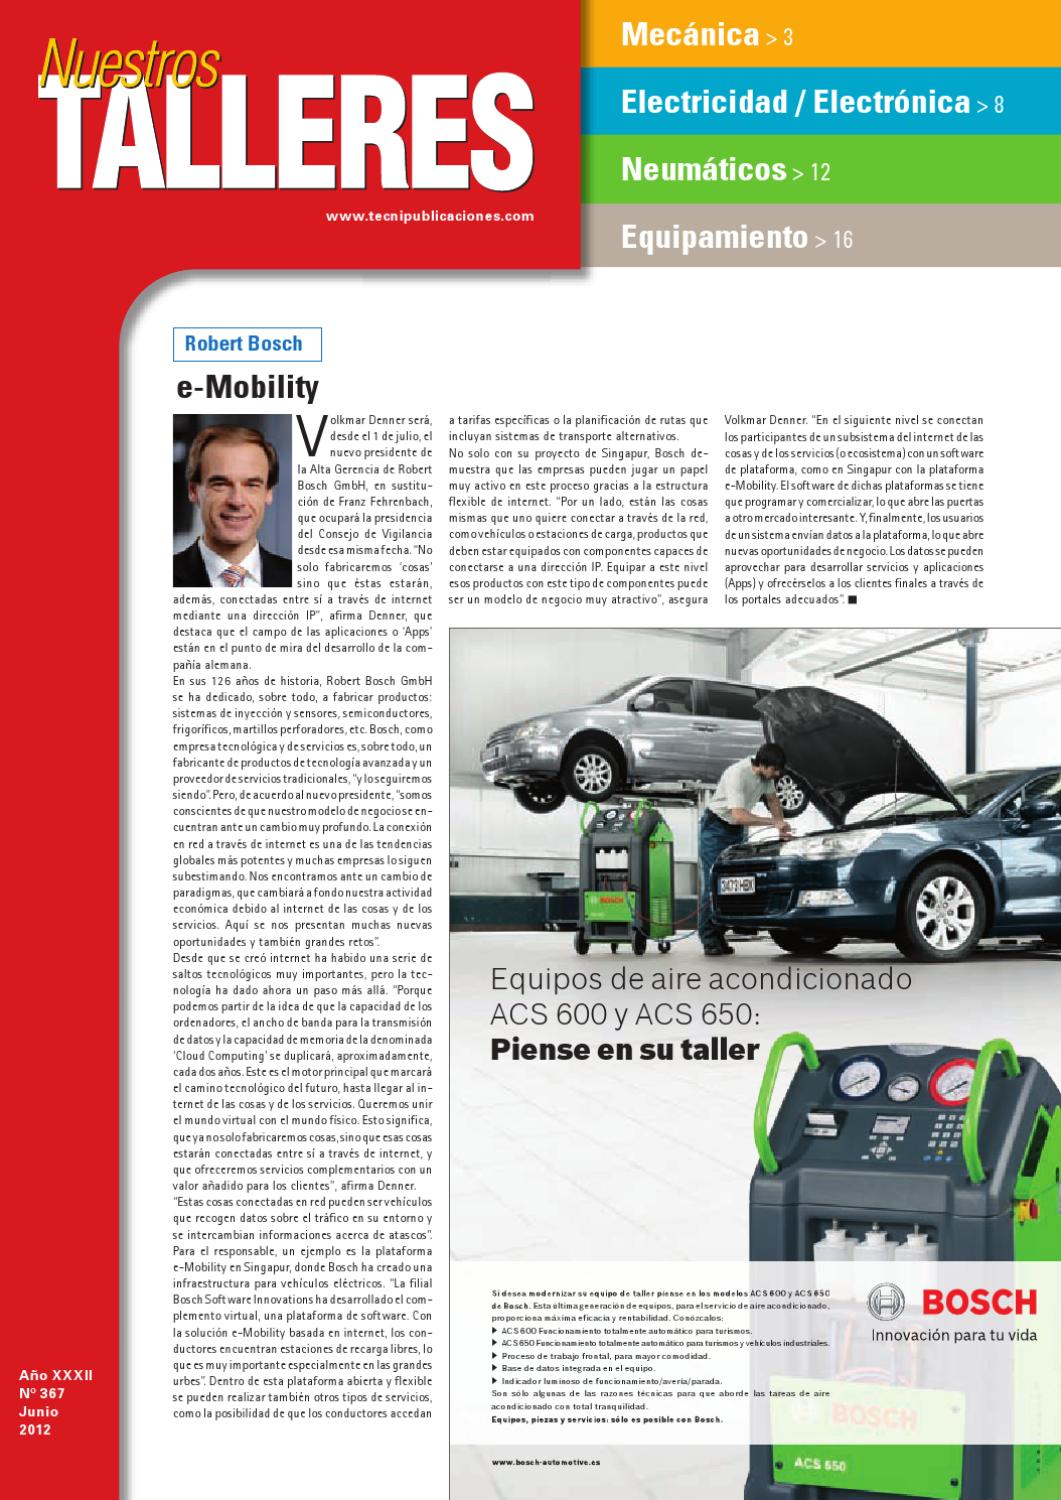 Talleres-chapa-367 by Digital Newspapers S.L. - issuu